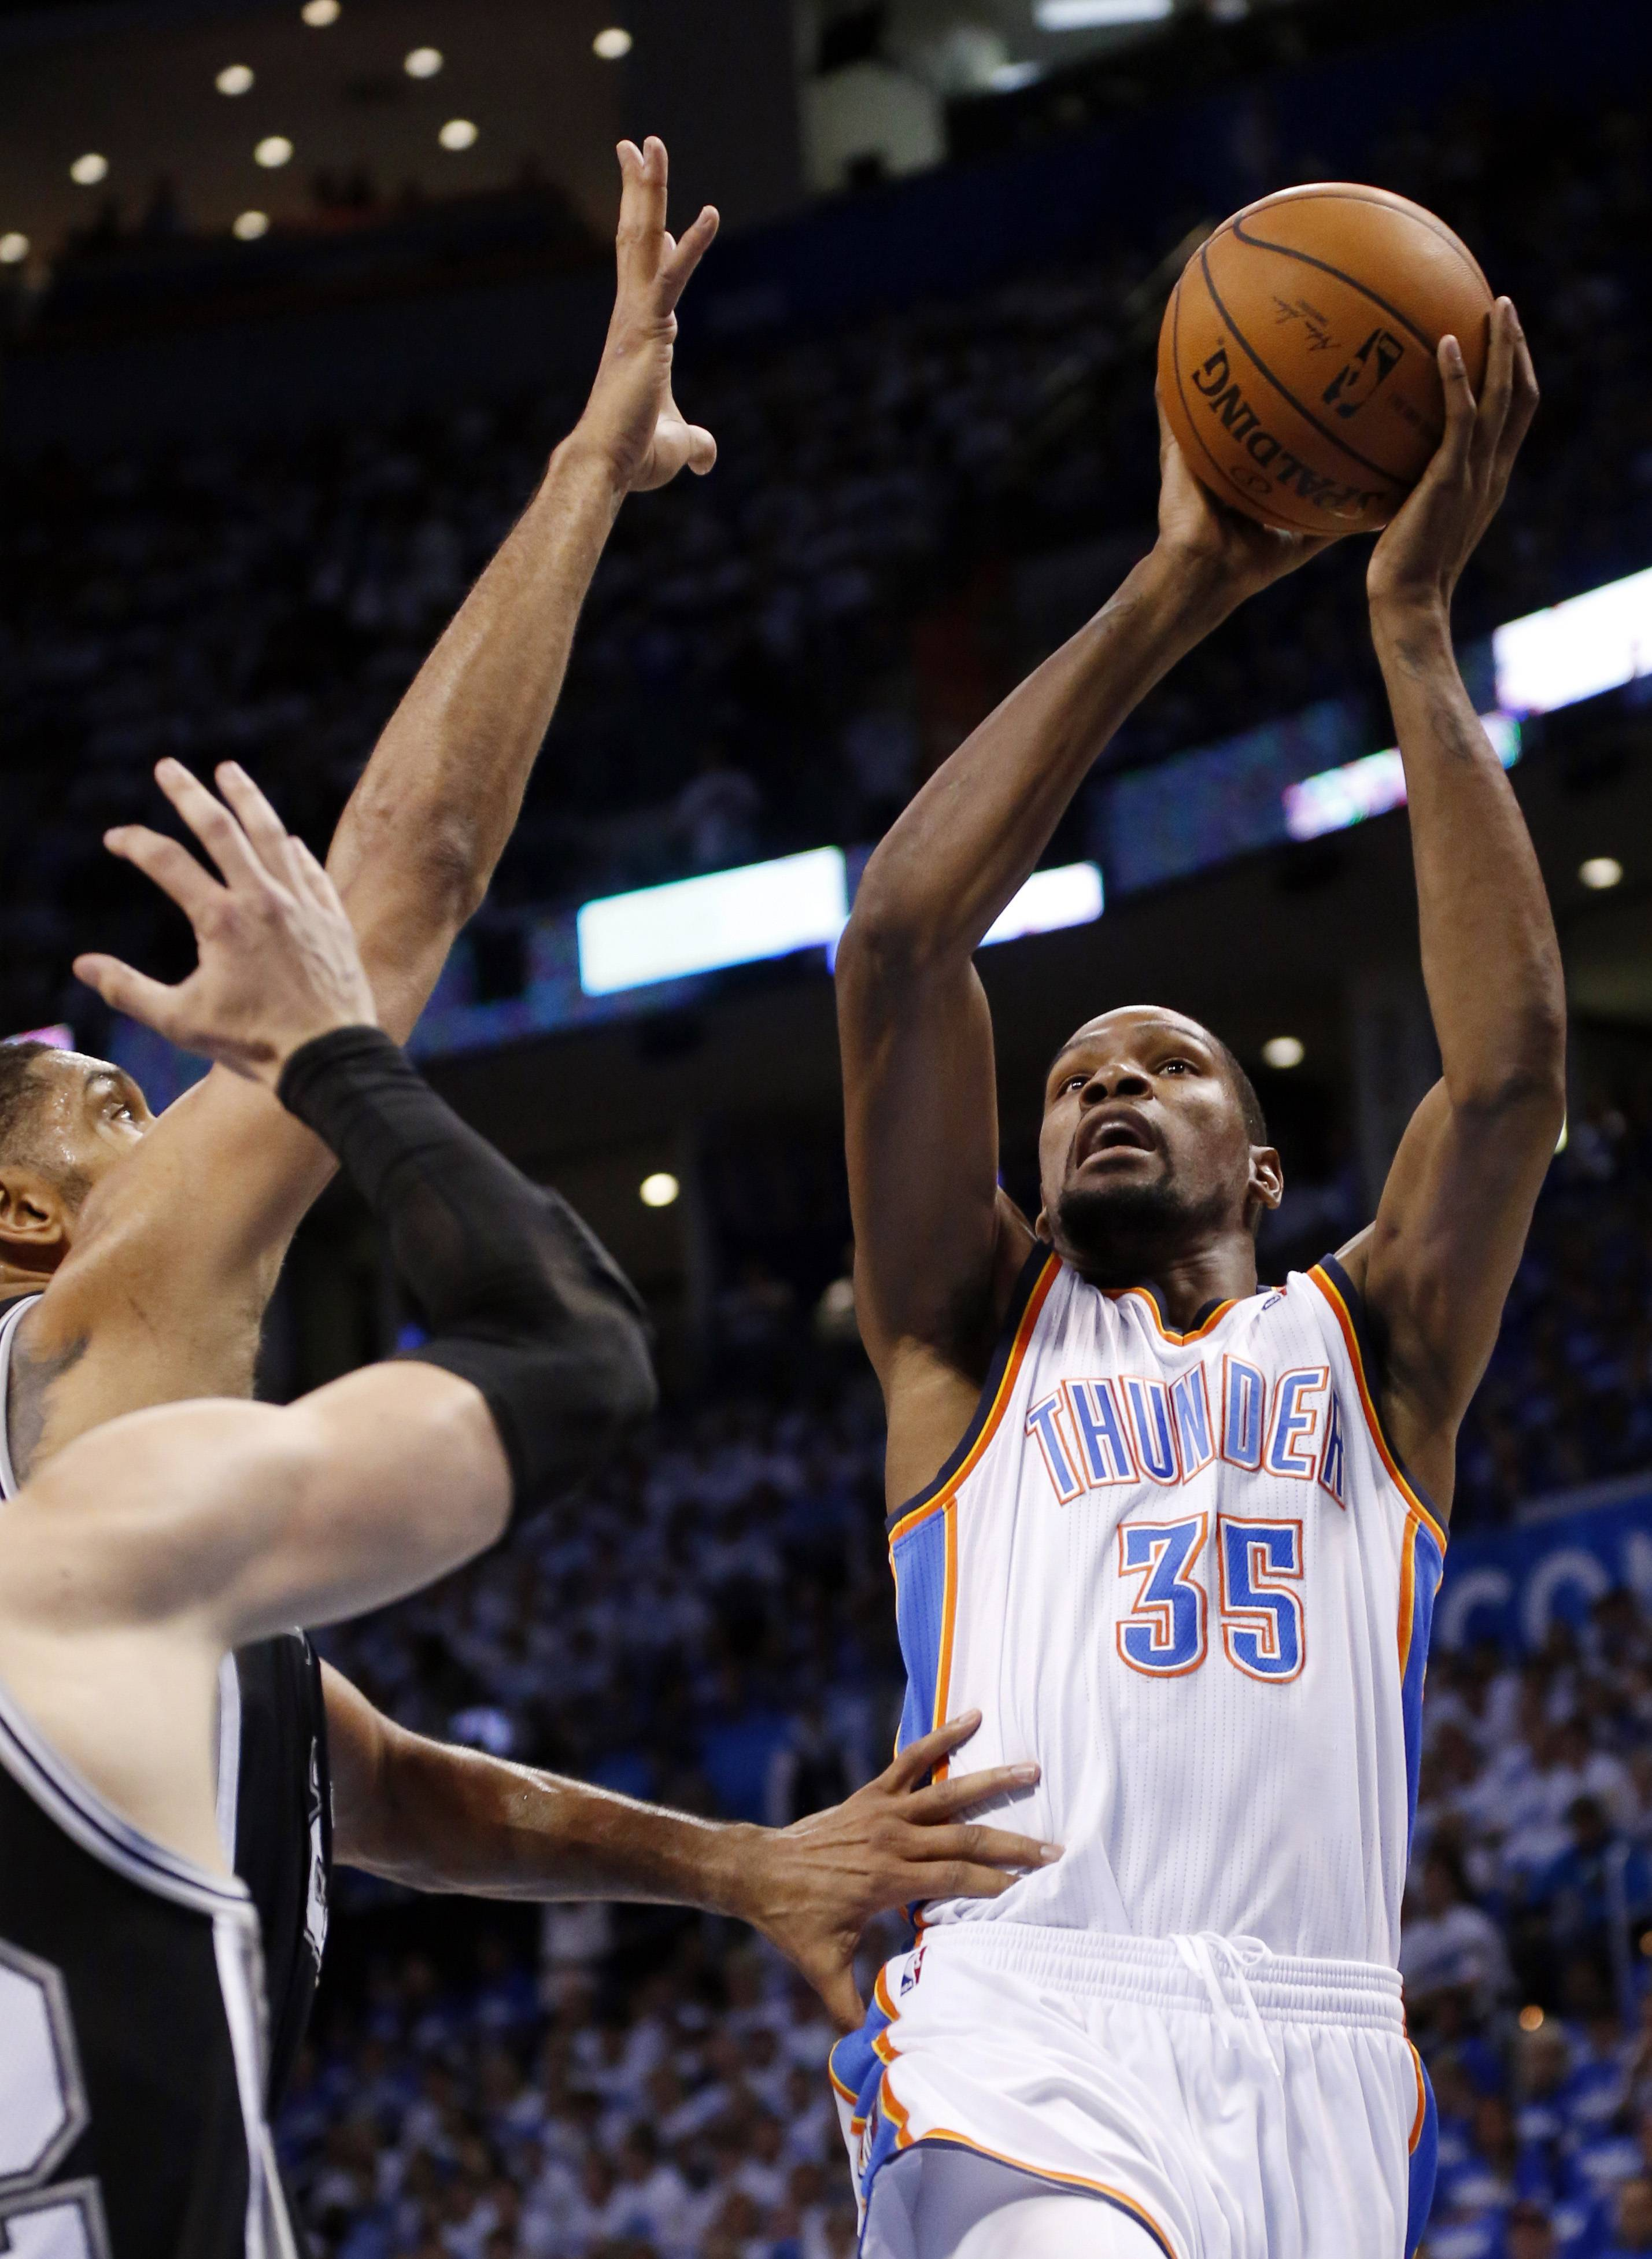 Russell Westbrook had 40 points and 10 assists, and the Oklahoma City Thunder beat the San Antonio Spurs 105-92 on Tuesday night to tie the Western Conference finals at two games apiece. It matched the second-highest playoff point total of Westbrook's career, falling short of the 43 he scored in the 2012 NBA Finals. He also had five rebounds and five steals.